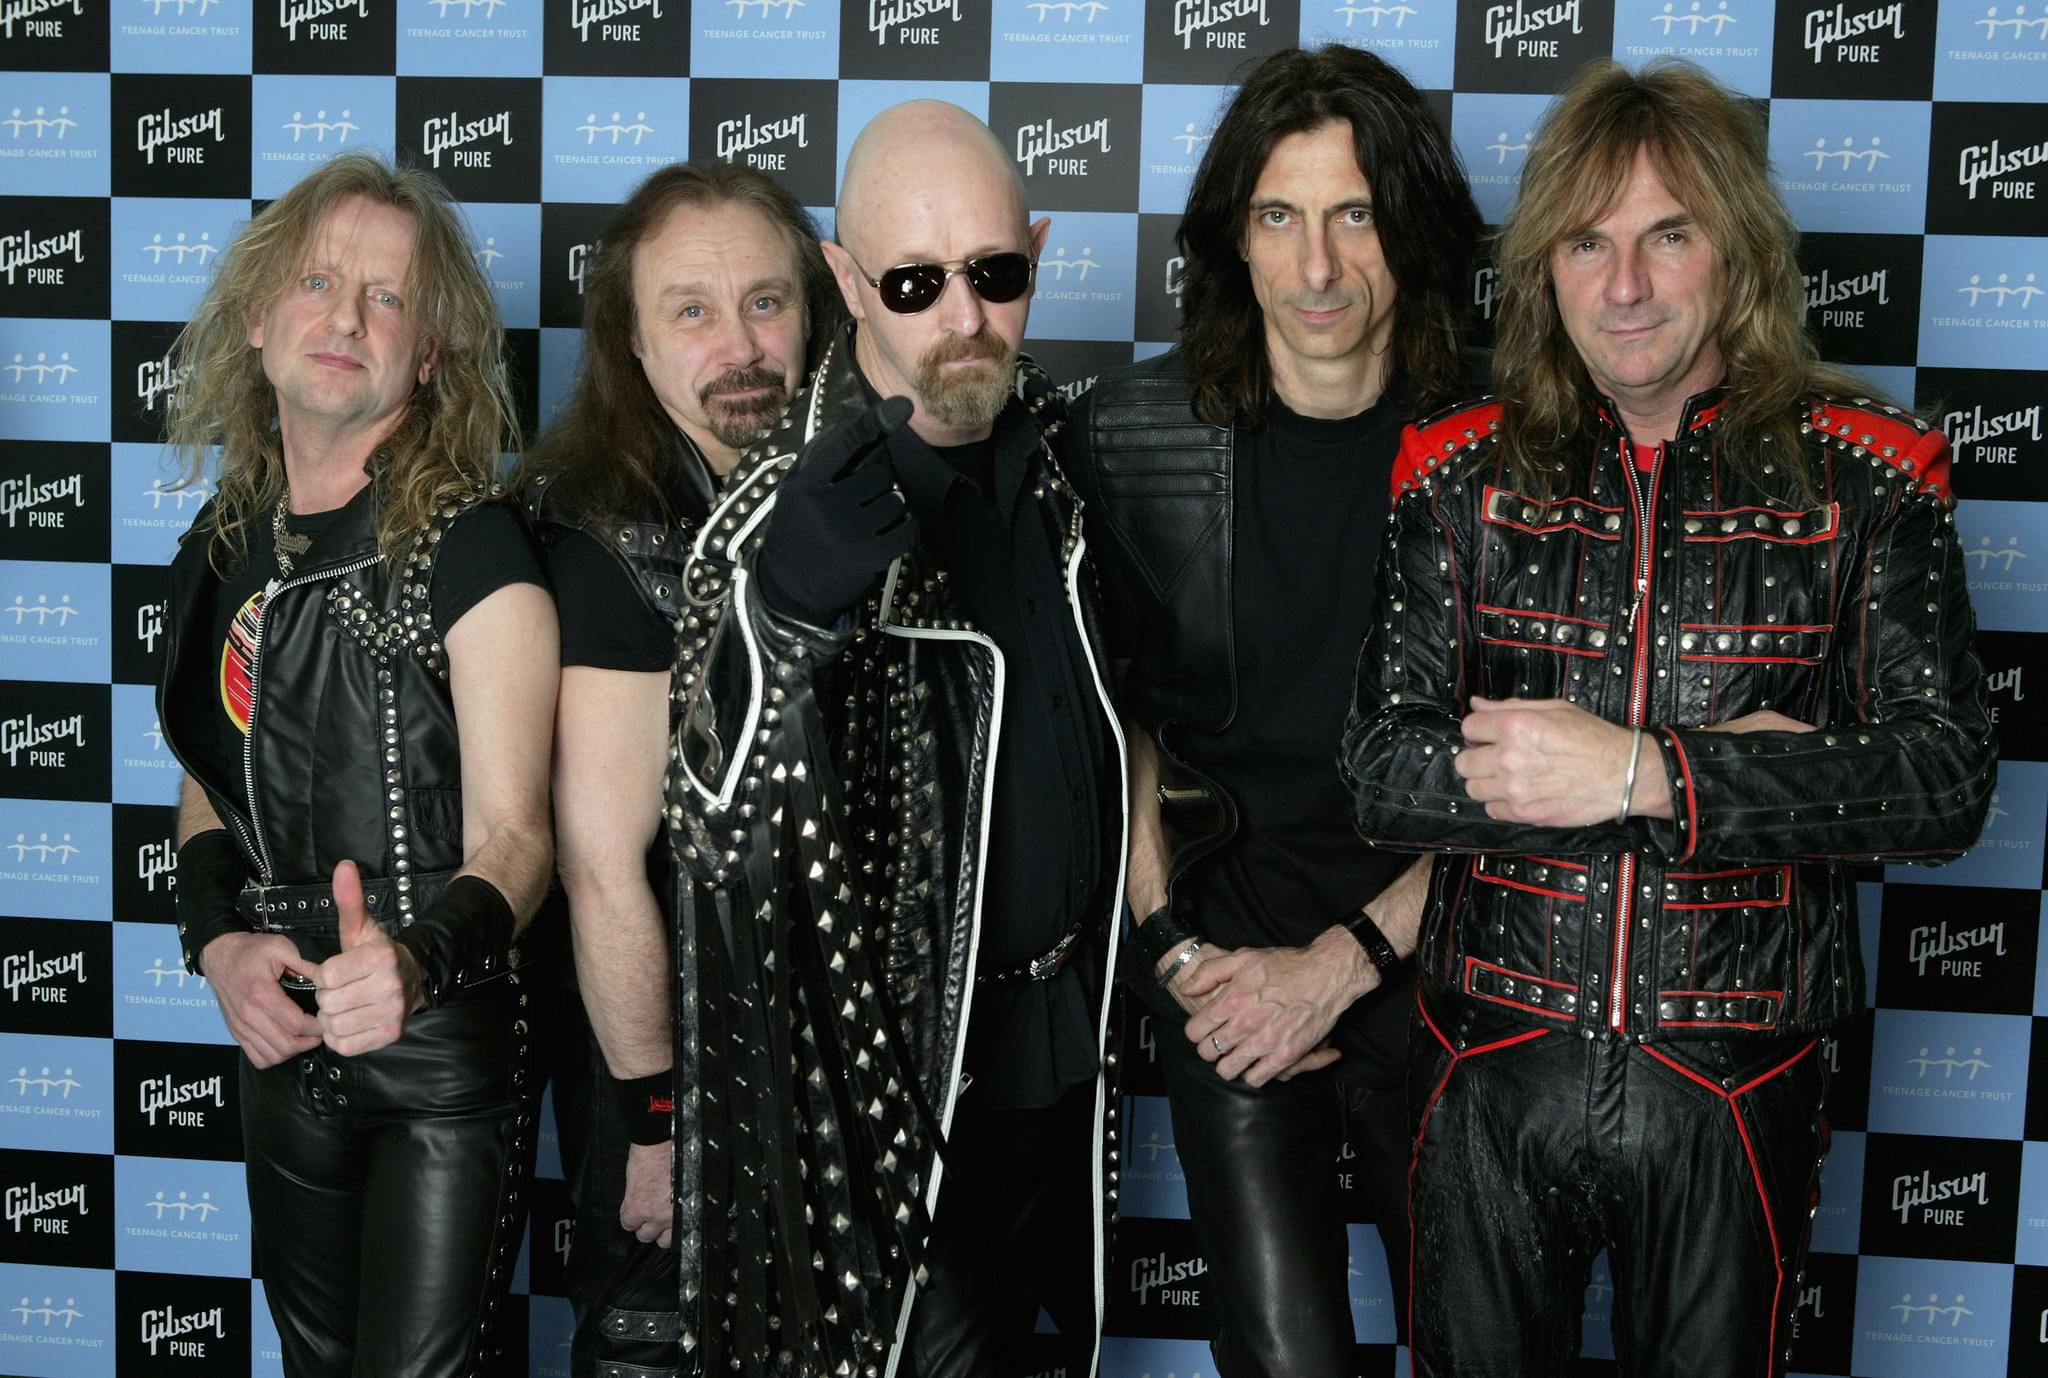 RICHIE FAULKNER – JUDAS PRIEST